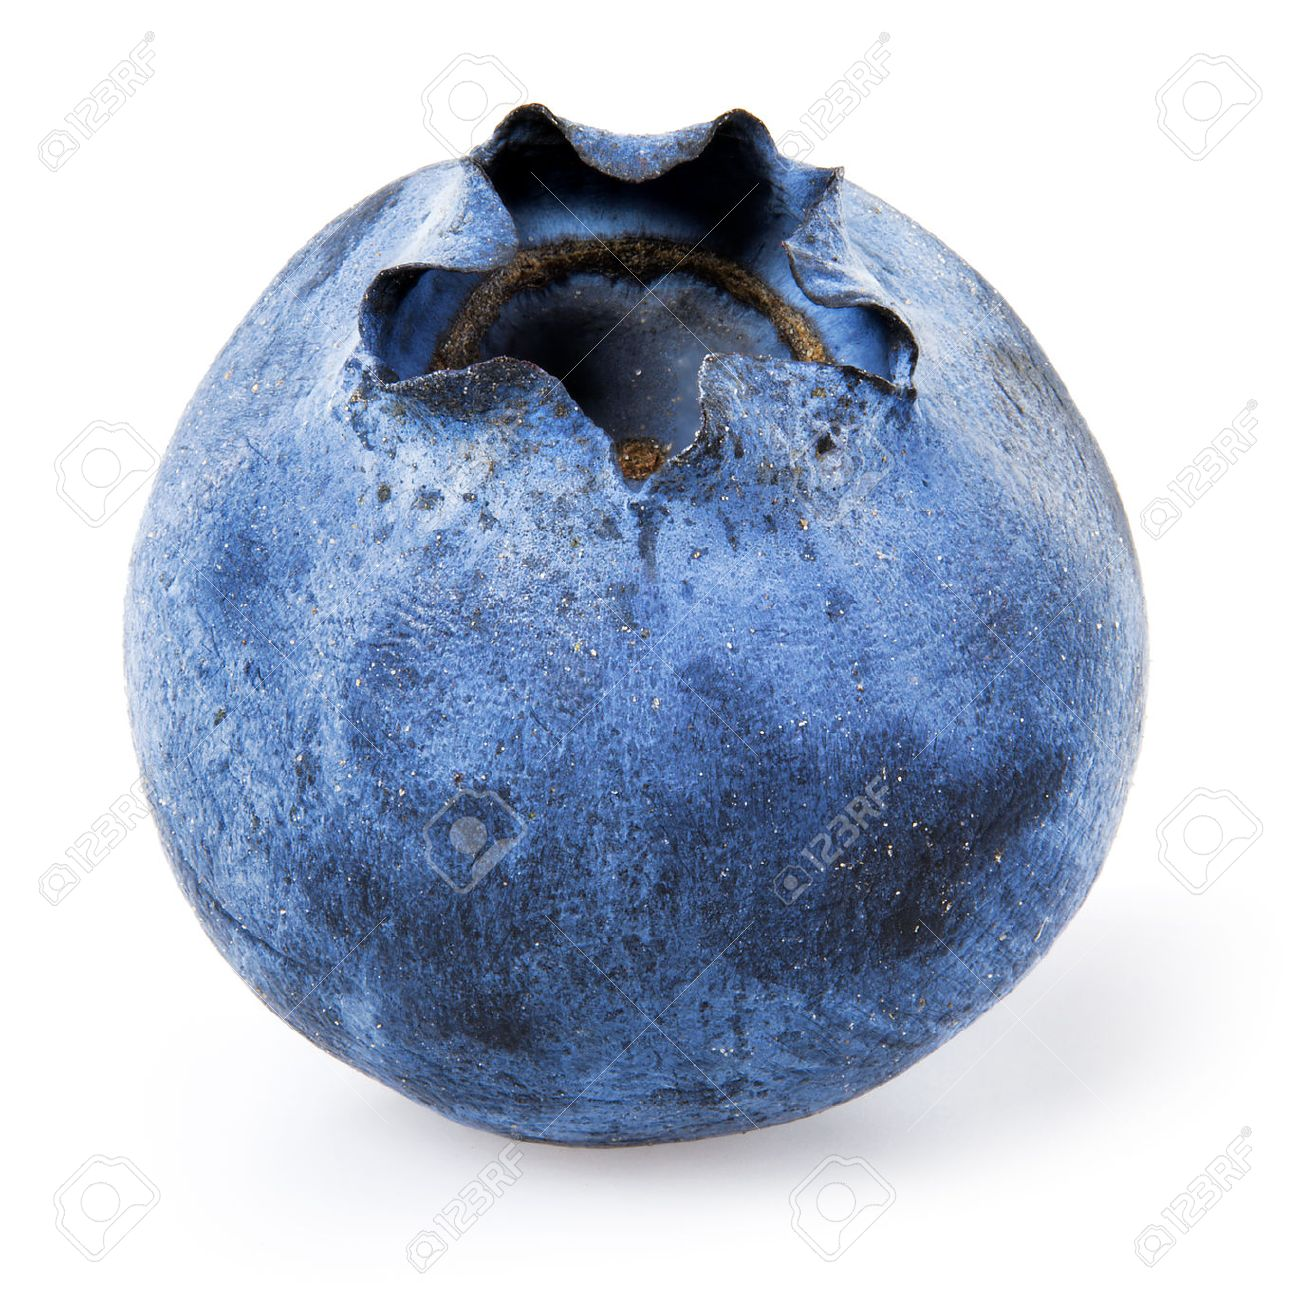 Blueberry. One Bilberry Isolated On White. Stock Photo, Picture And Royalty  Free Image. Image 36495274.